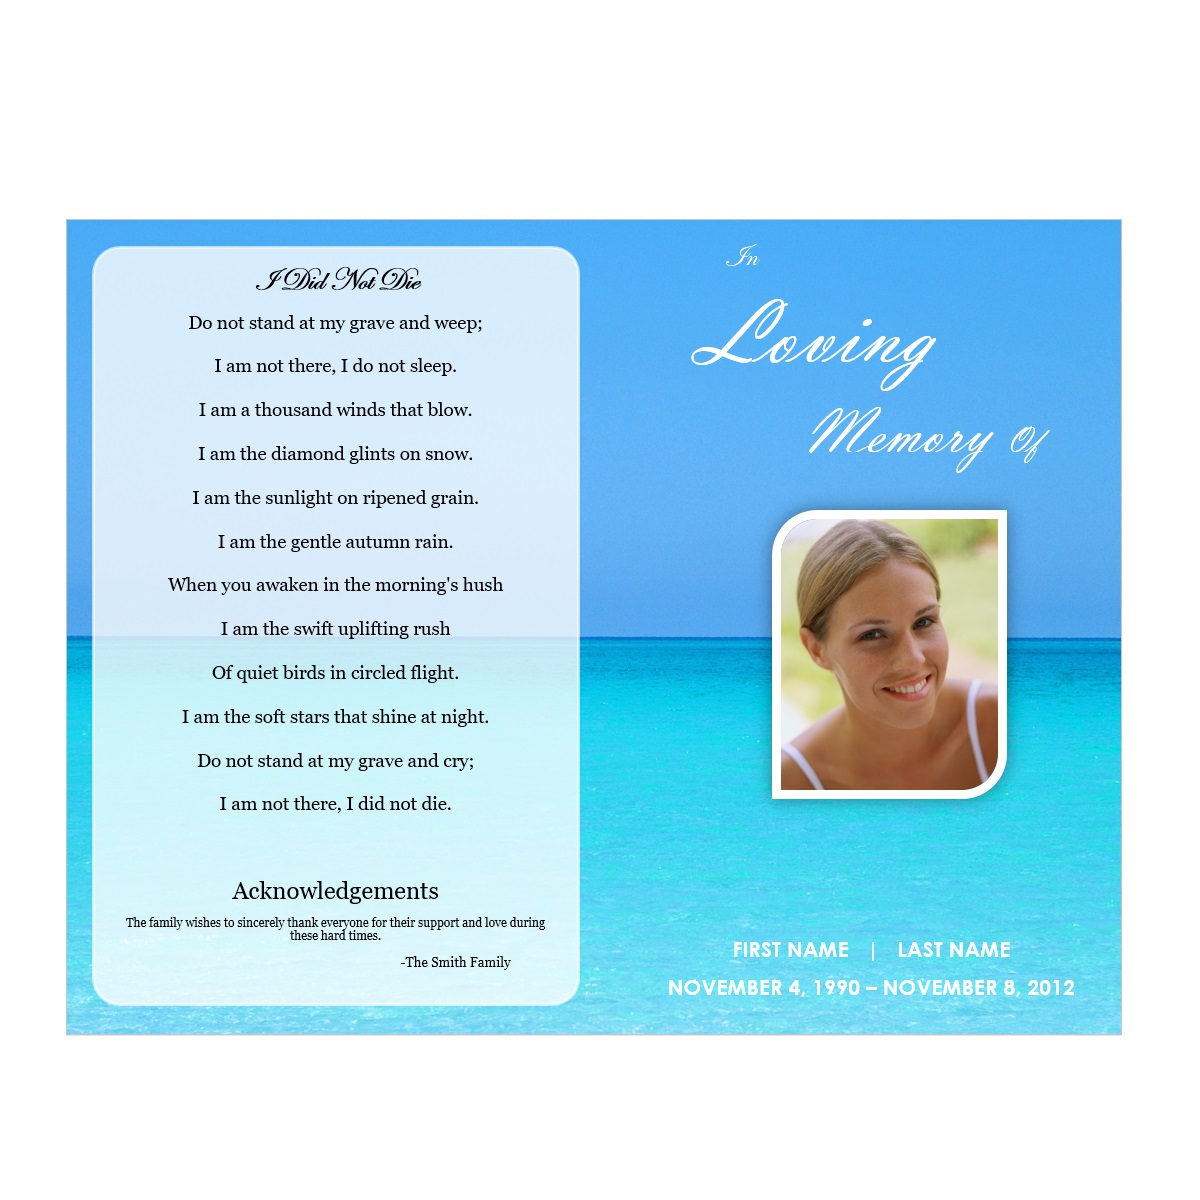 Printable Obituary Template Microsoft Word · Ocean Funeral Obituary Program  ...  Free Funeral Program Template Microsoft Word